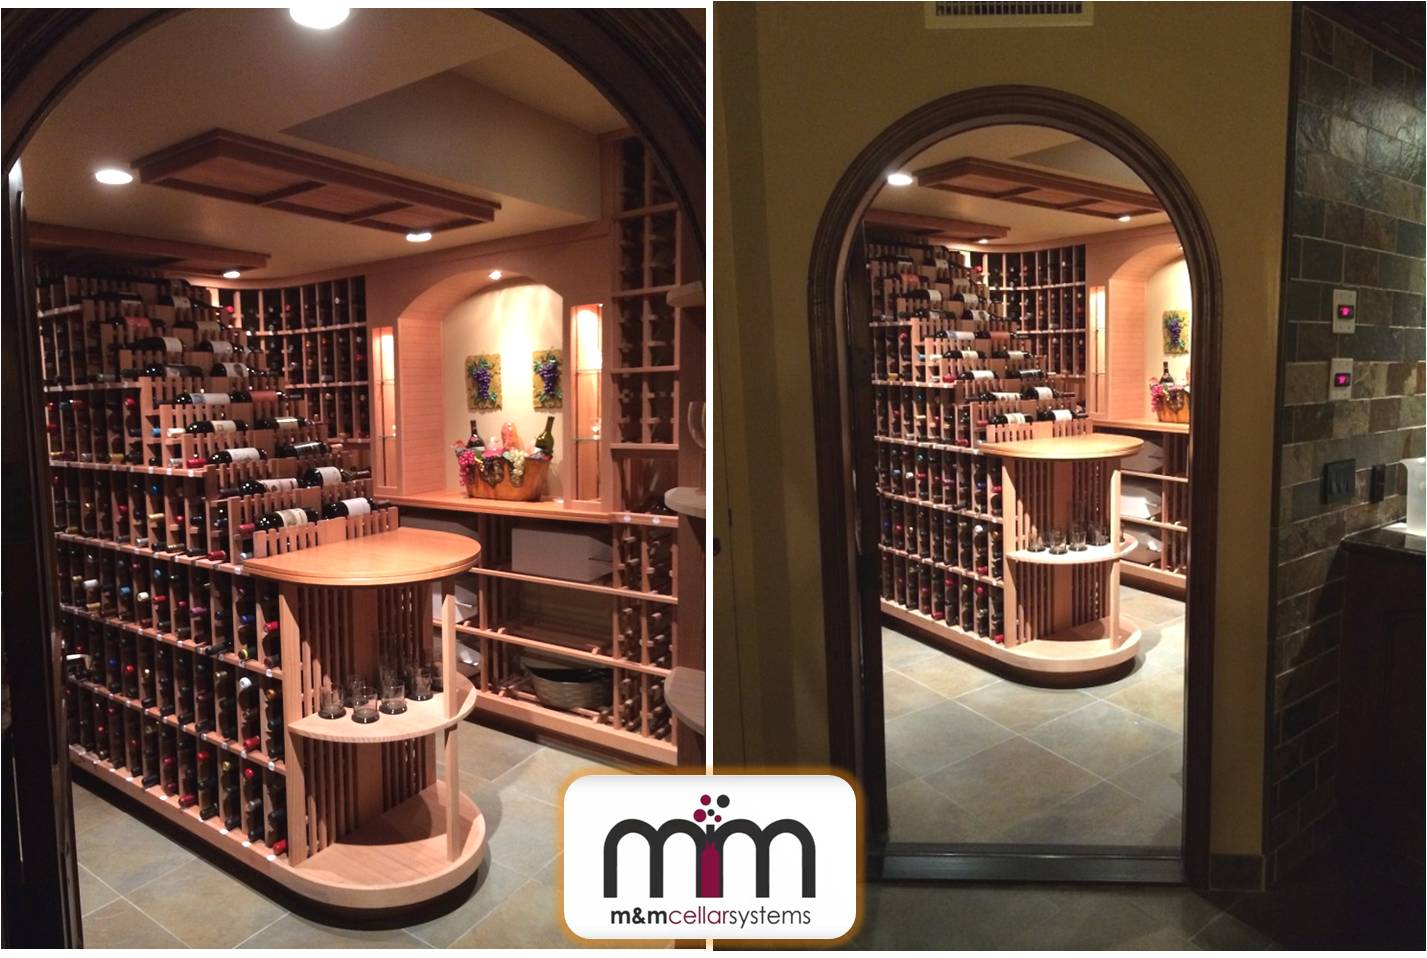 Wine Cellar Refrigeration Installation Project in Bel Air, Los Angeles, CA